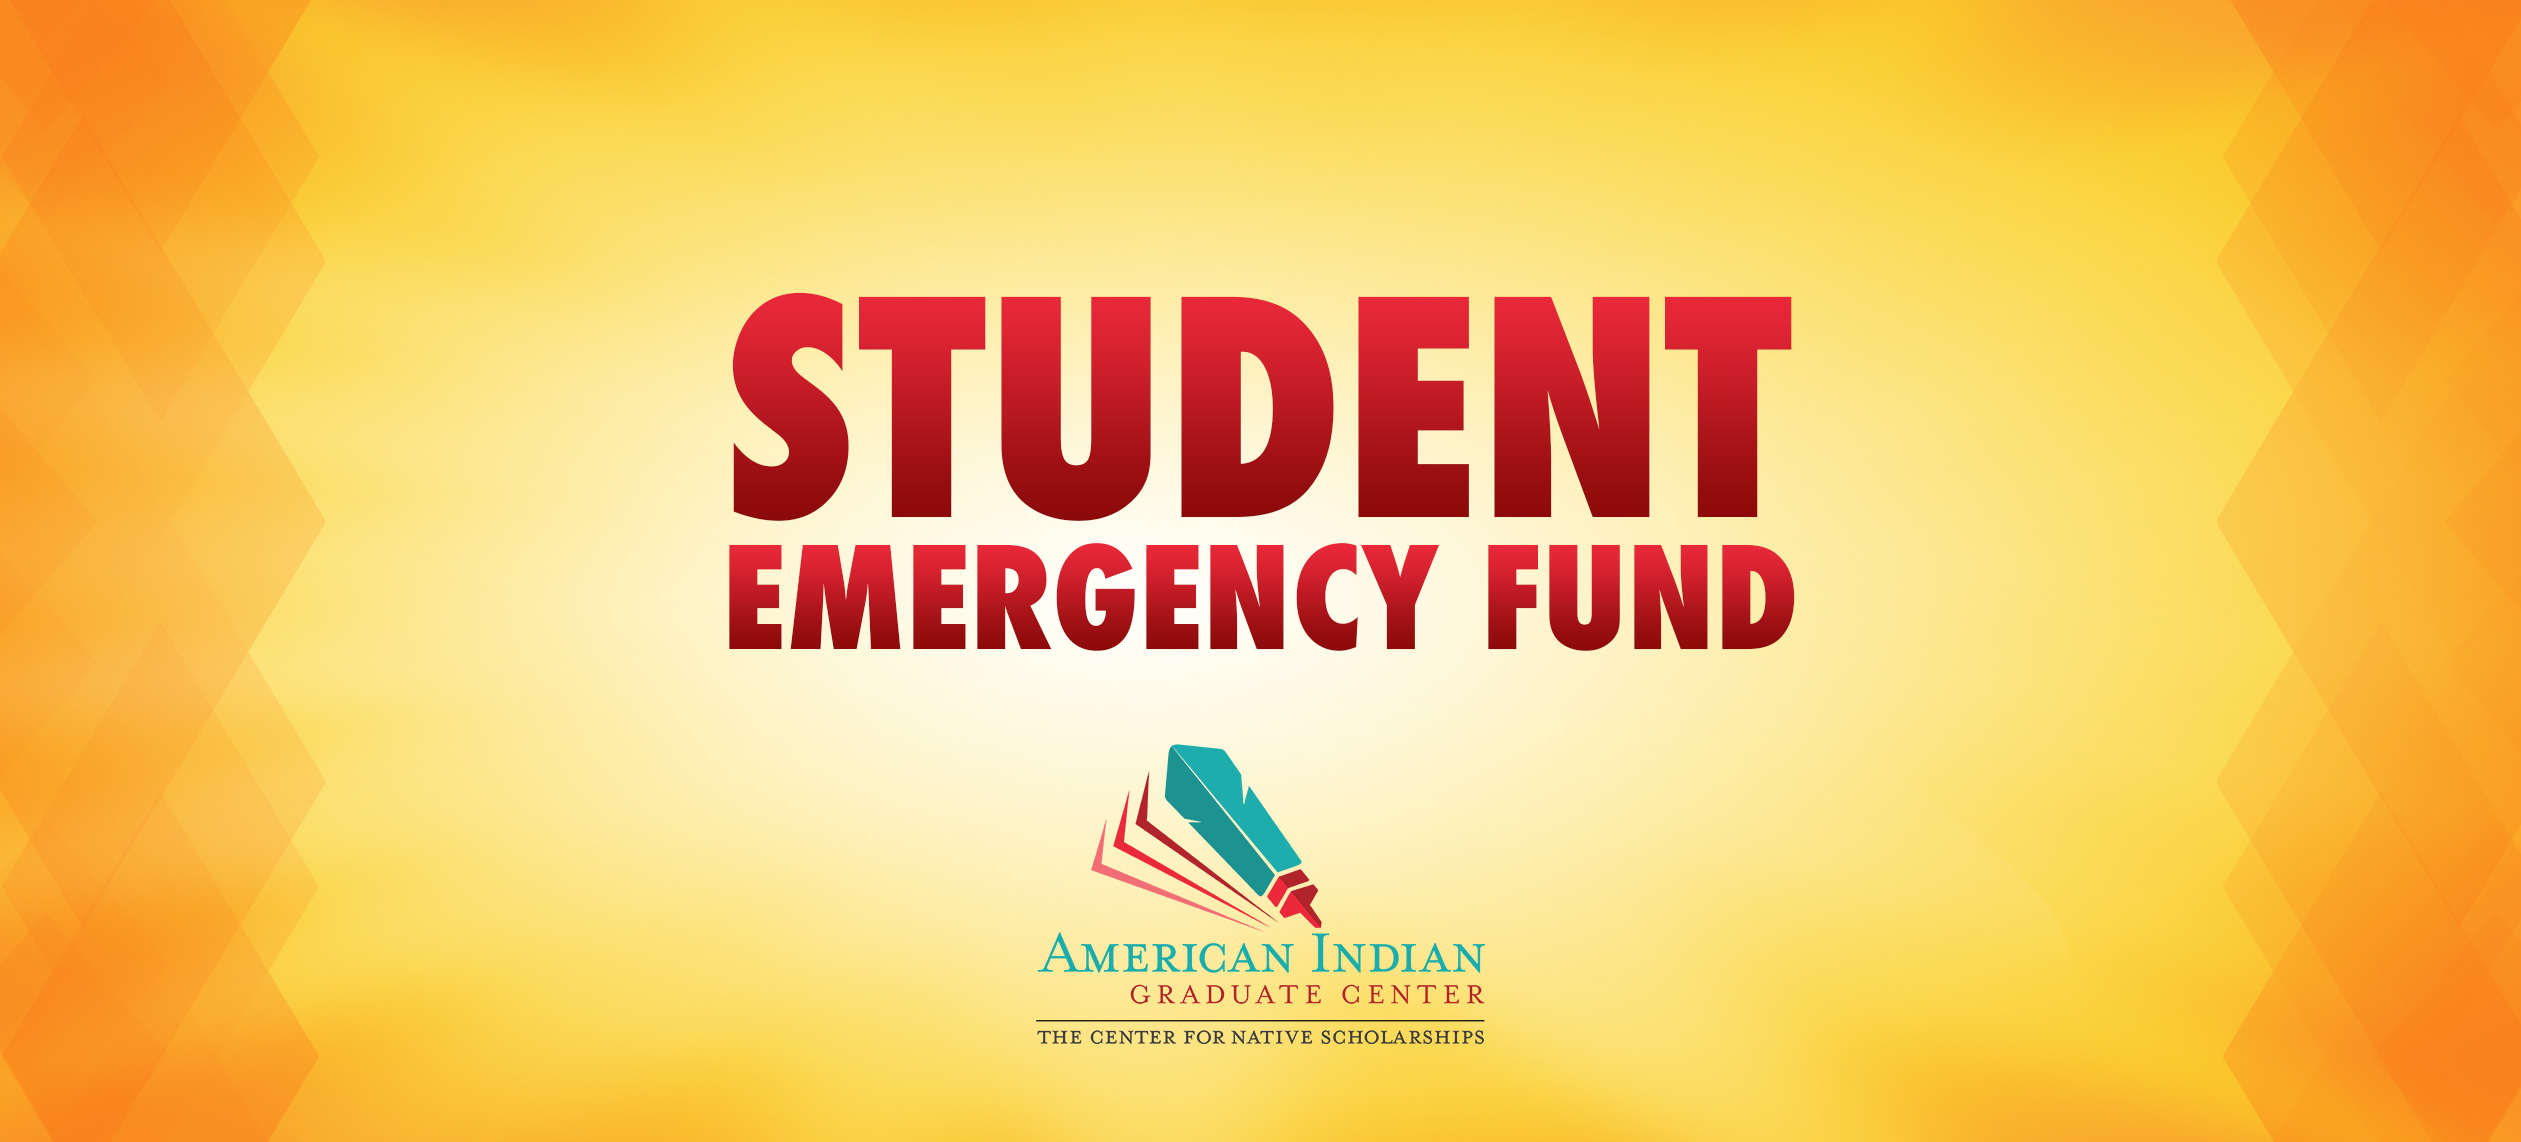 Student Emergency Fund AIGC